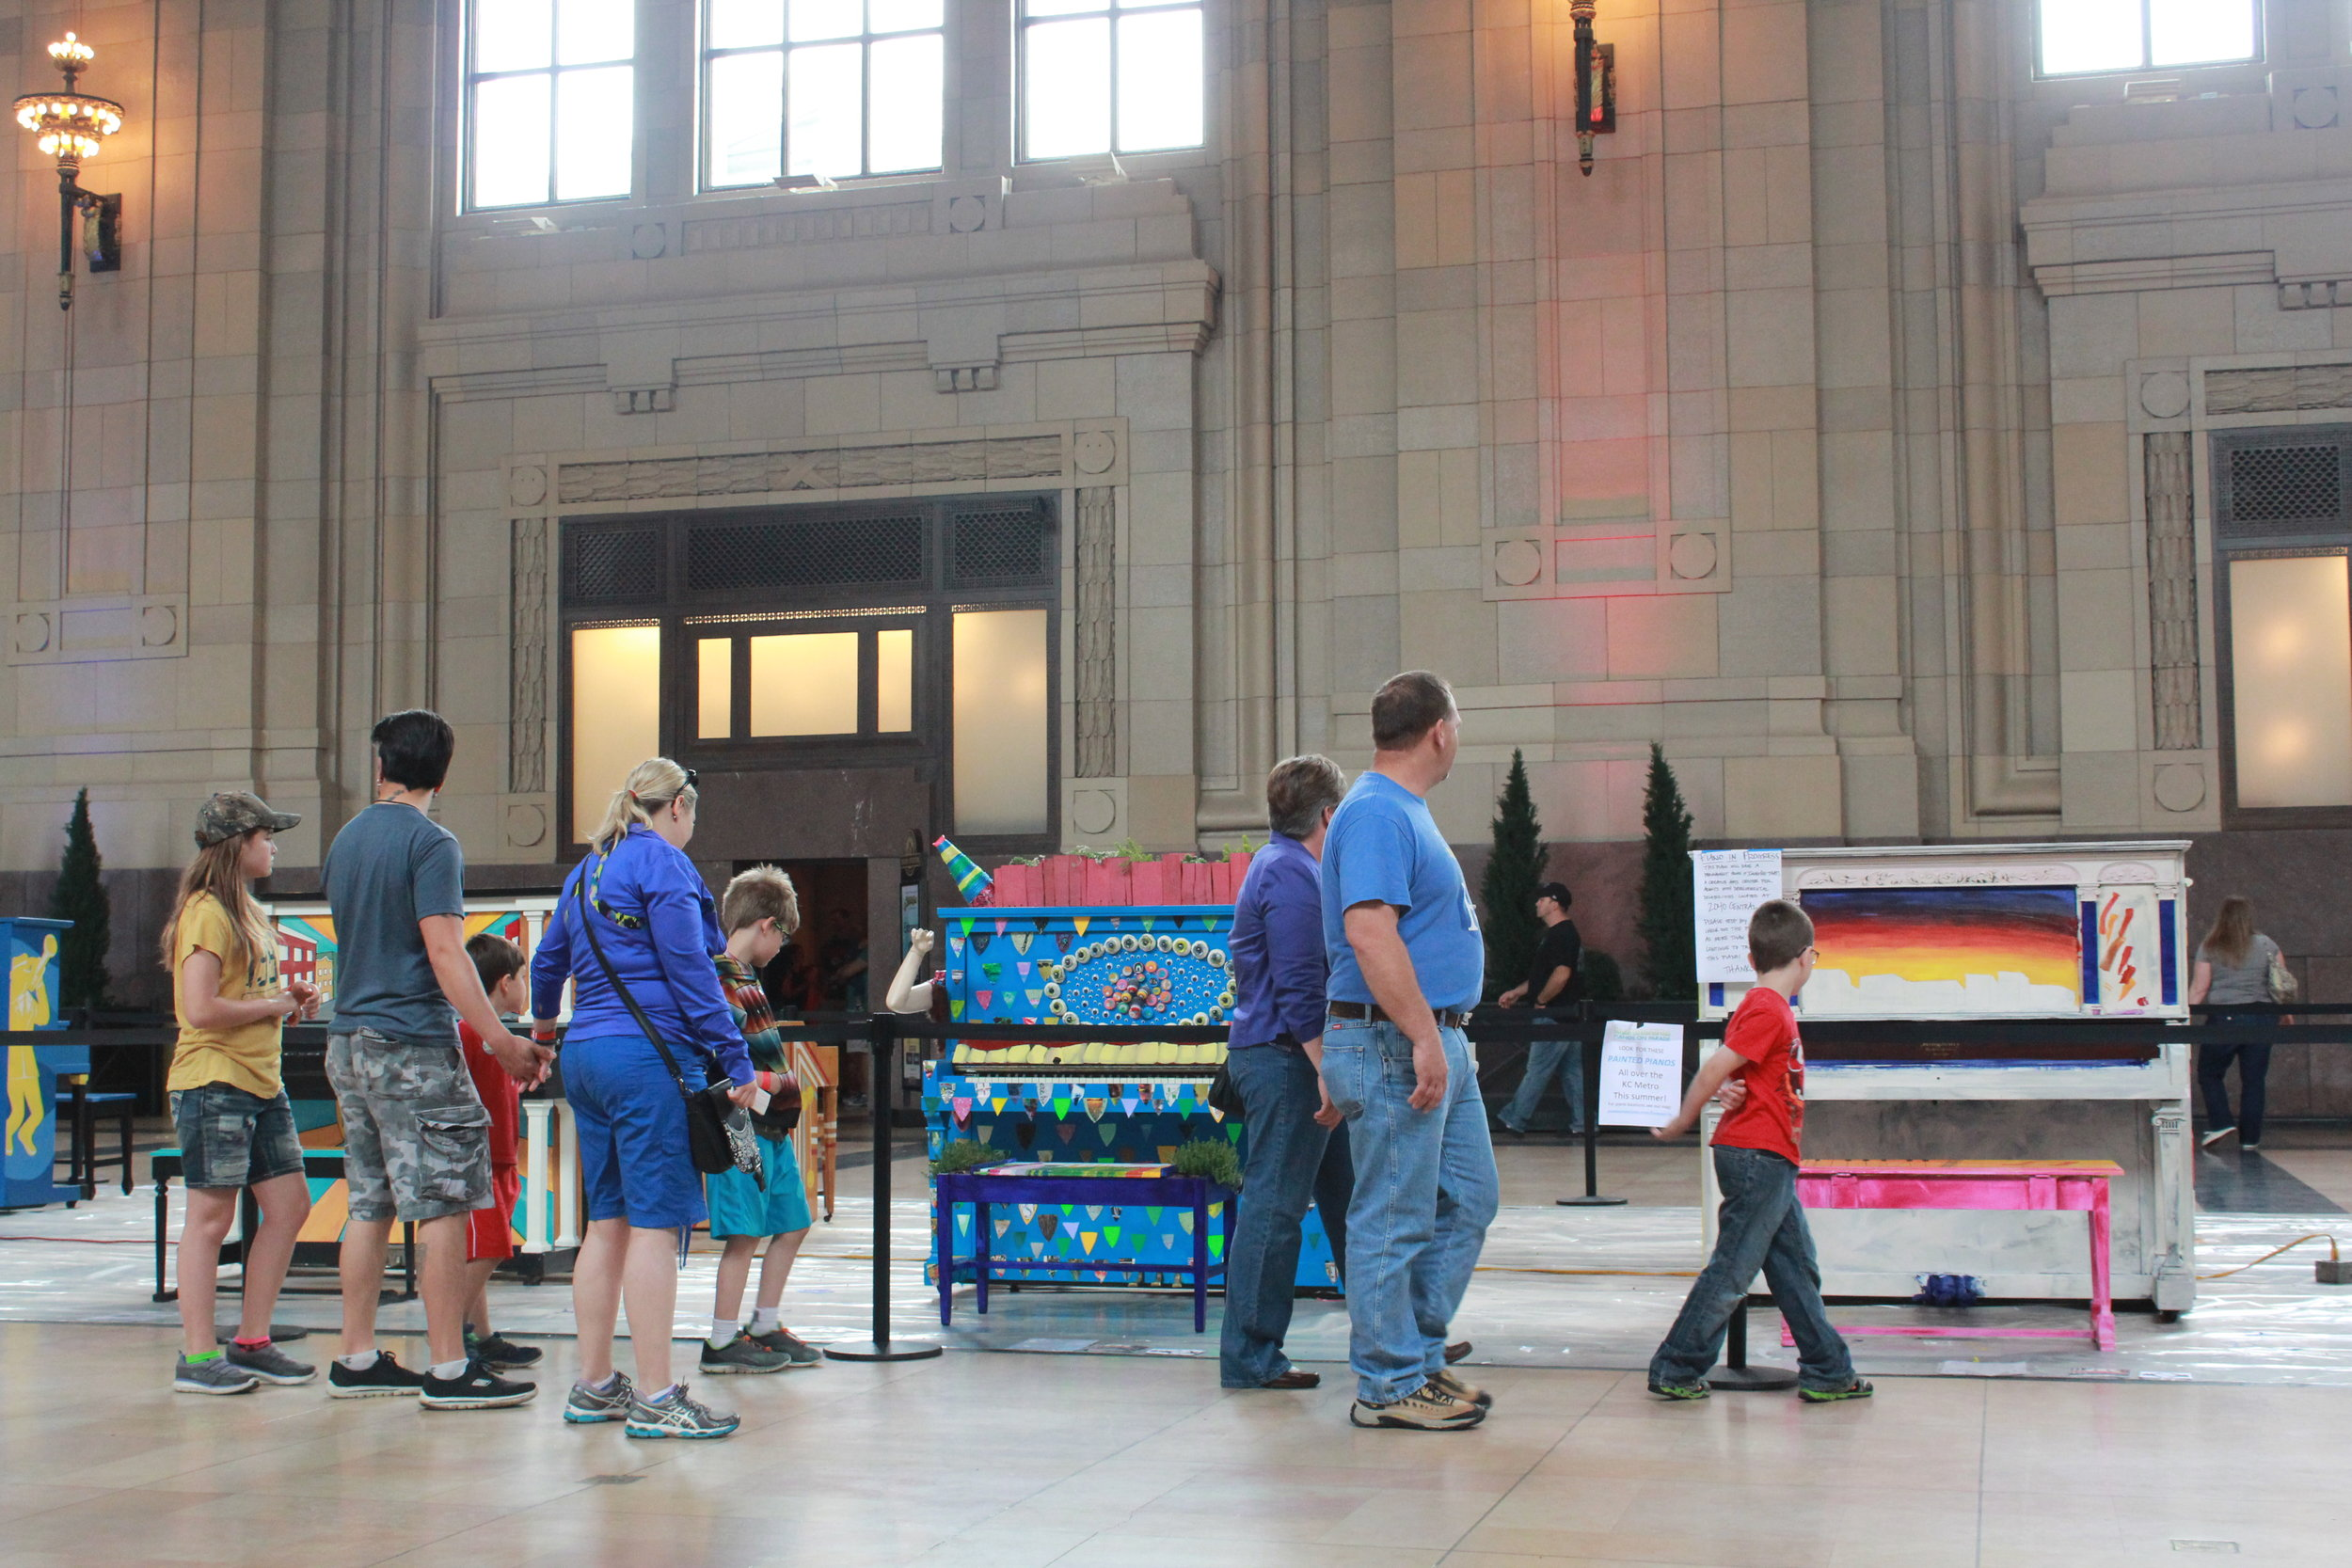 We often take visits to Kansas City's numerous museums, galleries, and artist studios. We're not only providing a place to create art, but a community of artists to be a part of.